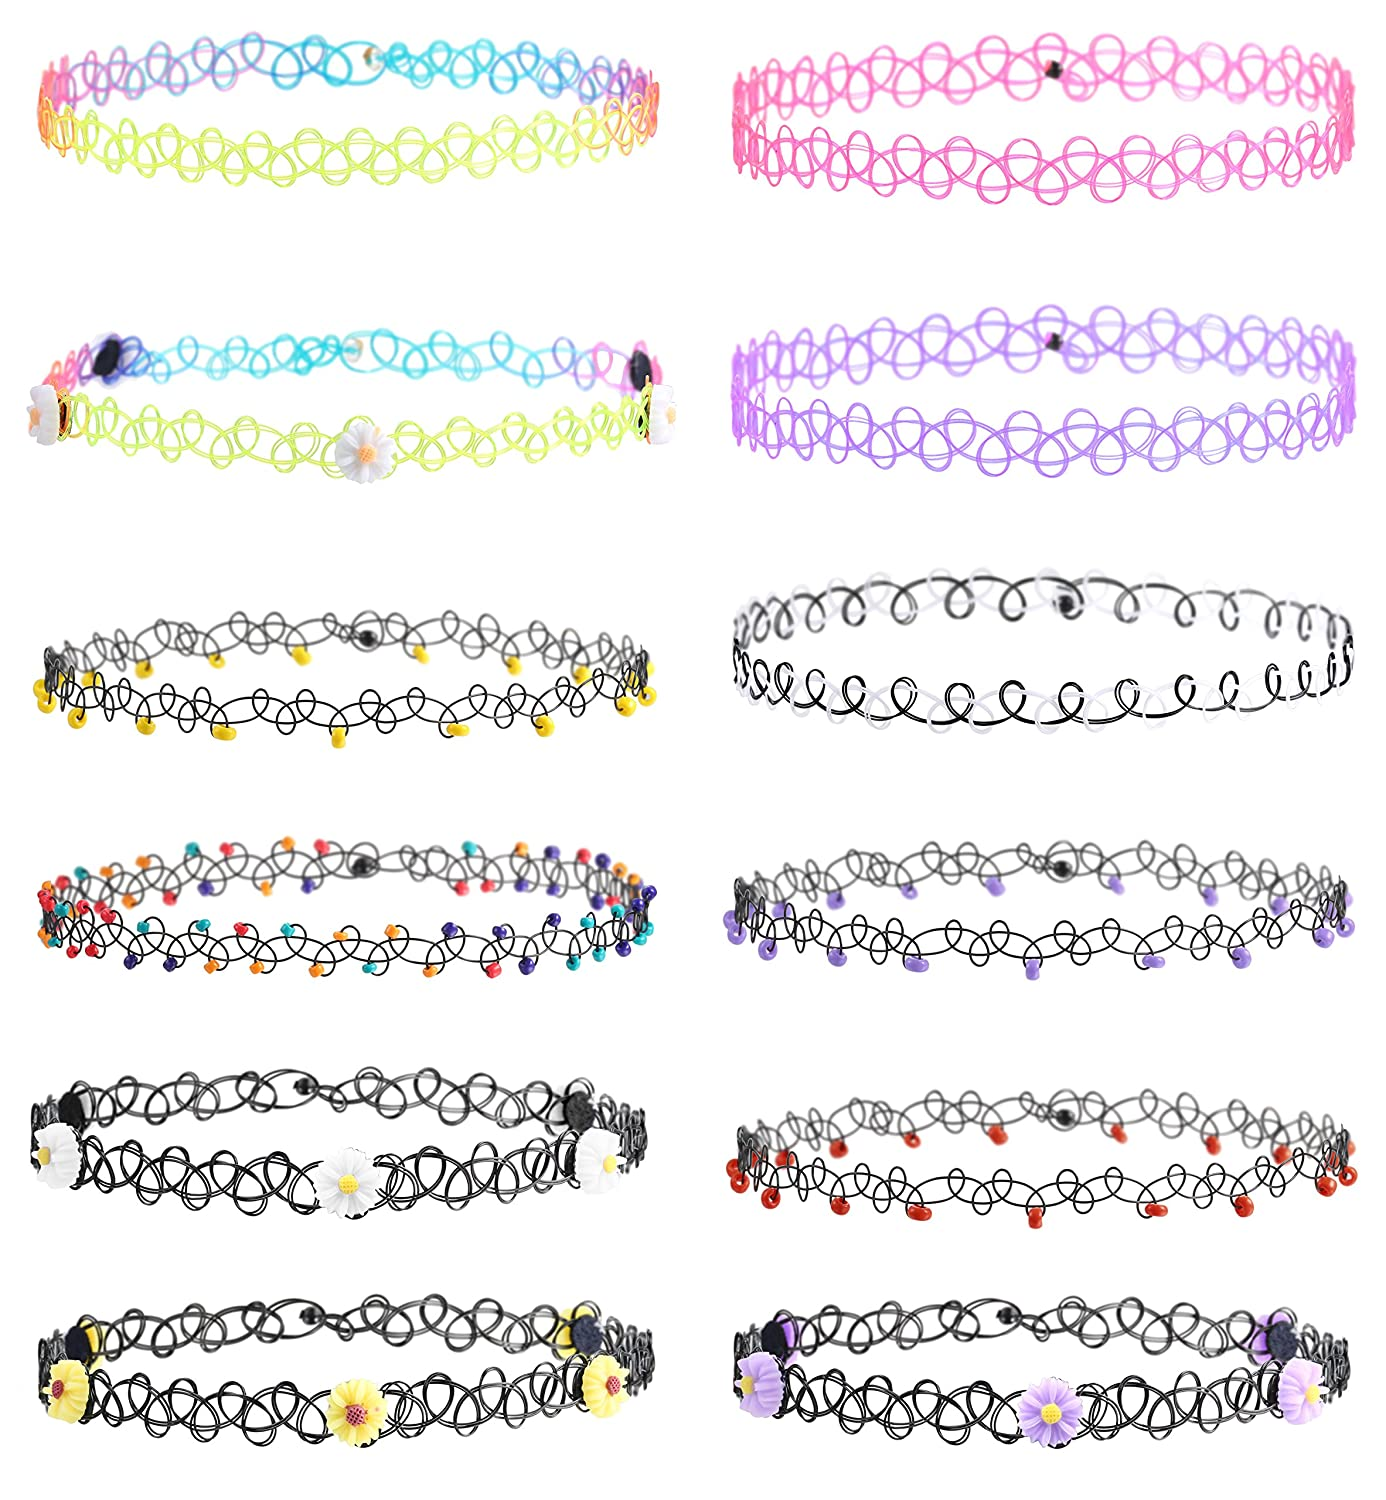 Besteel 8-12 PCS Womens Rubber Necklace Chain Double Line Tattoo Choker Necklace Stretch Elastic Set for Teen 80s 90s N3L-STL001-8P